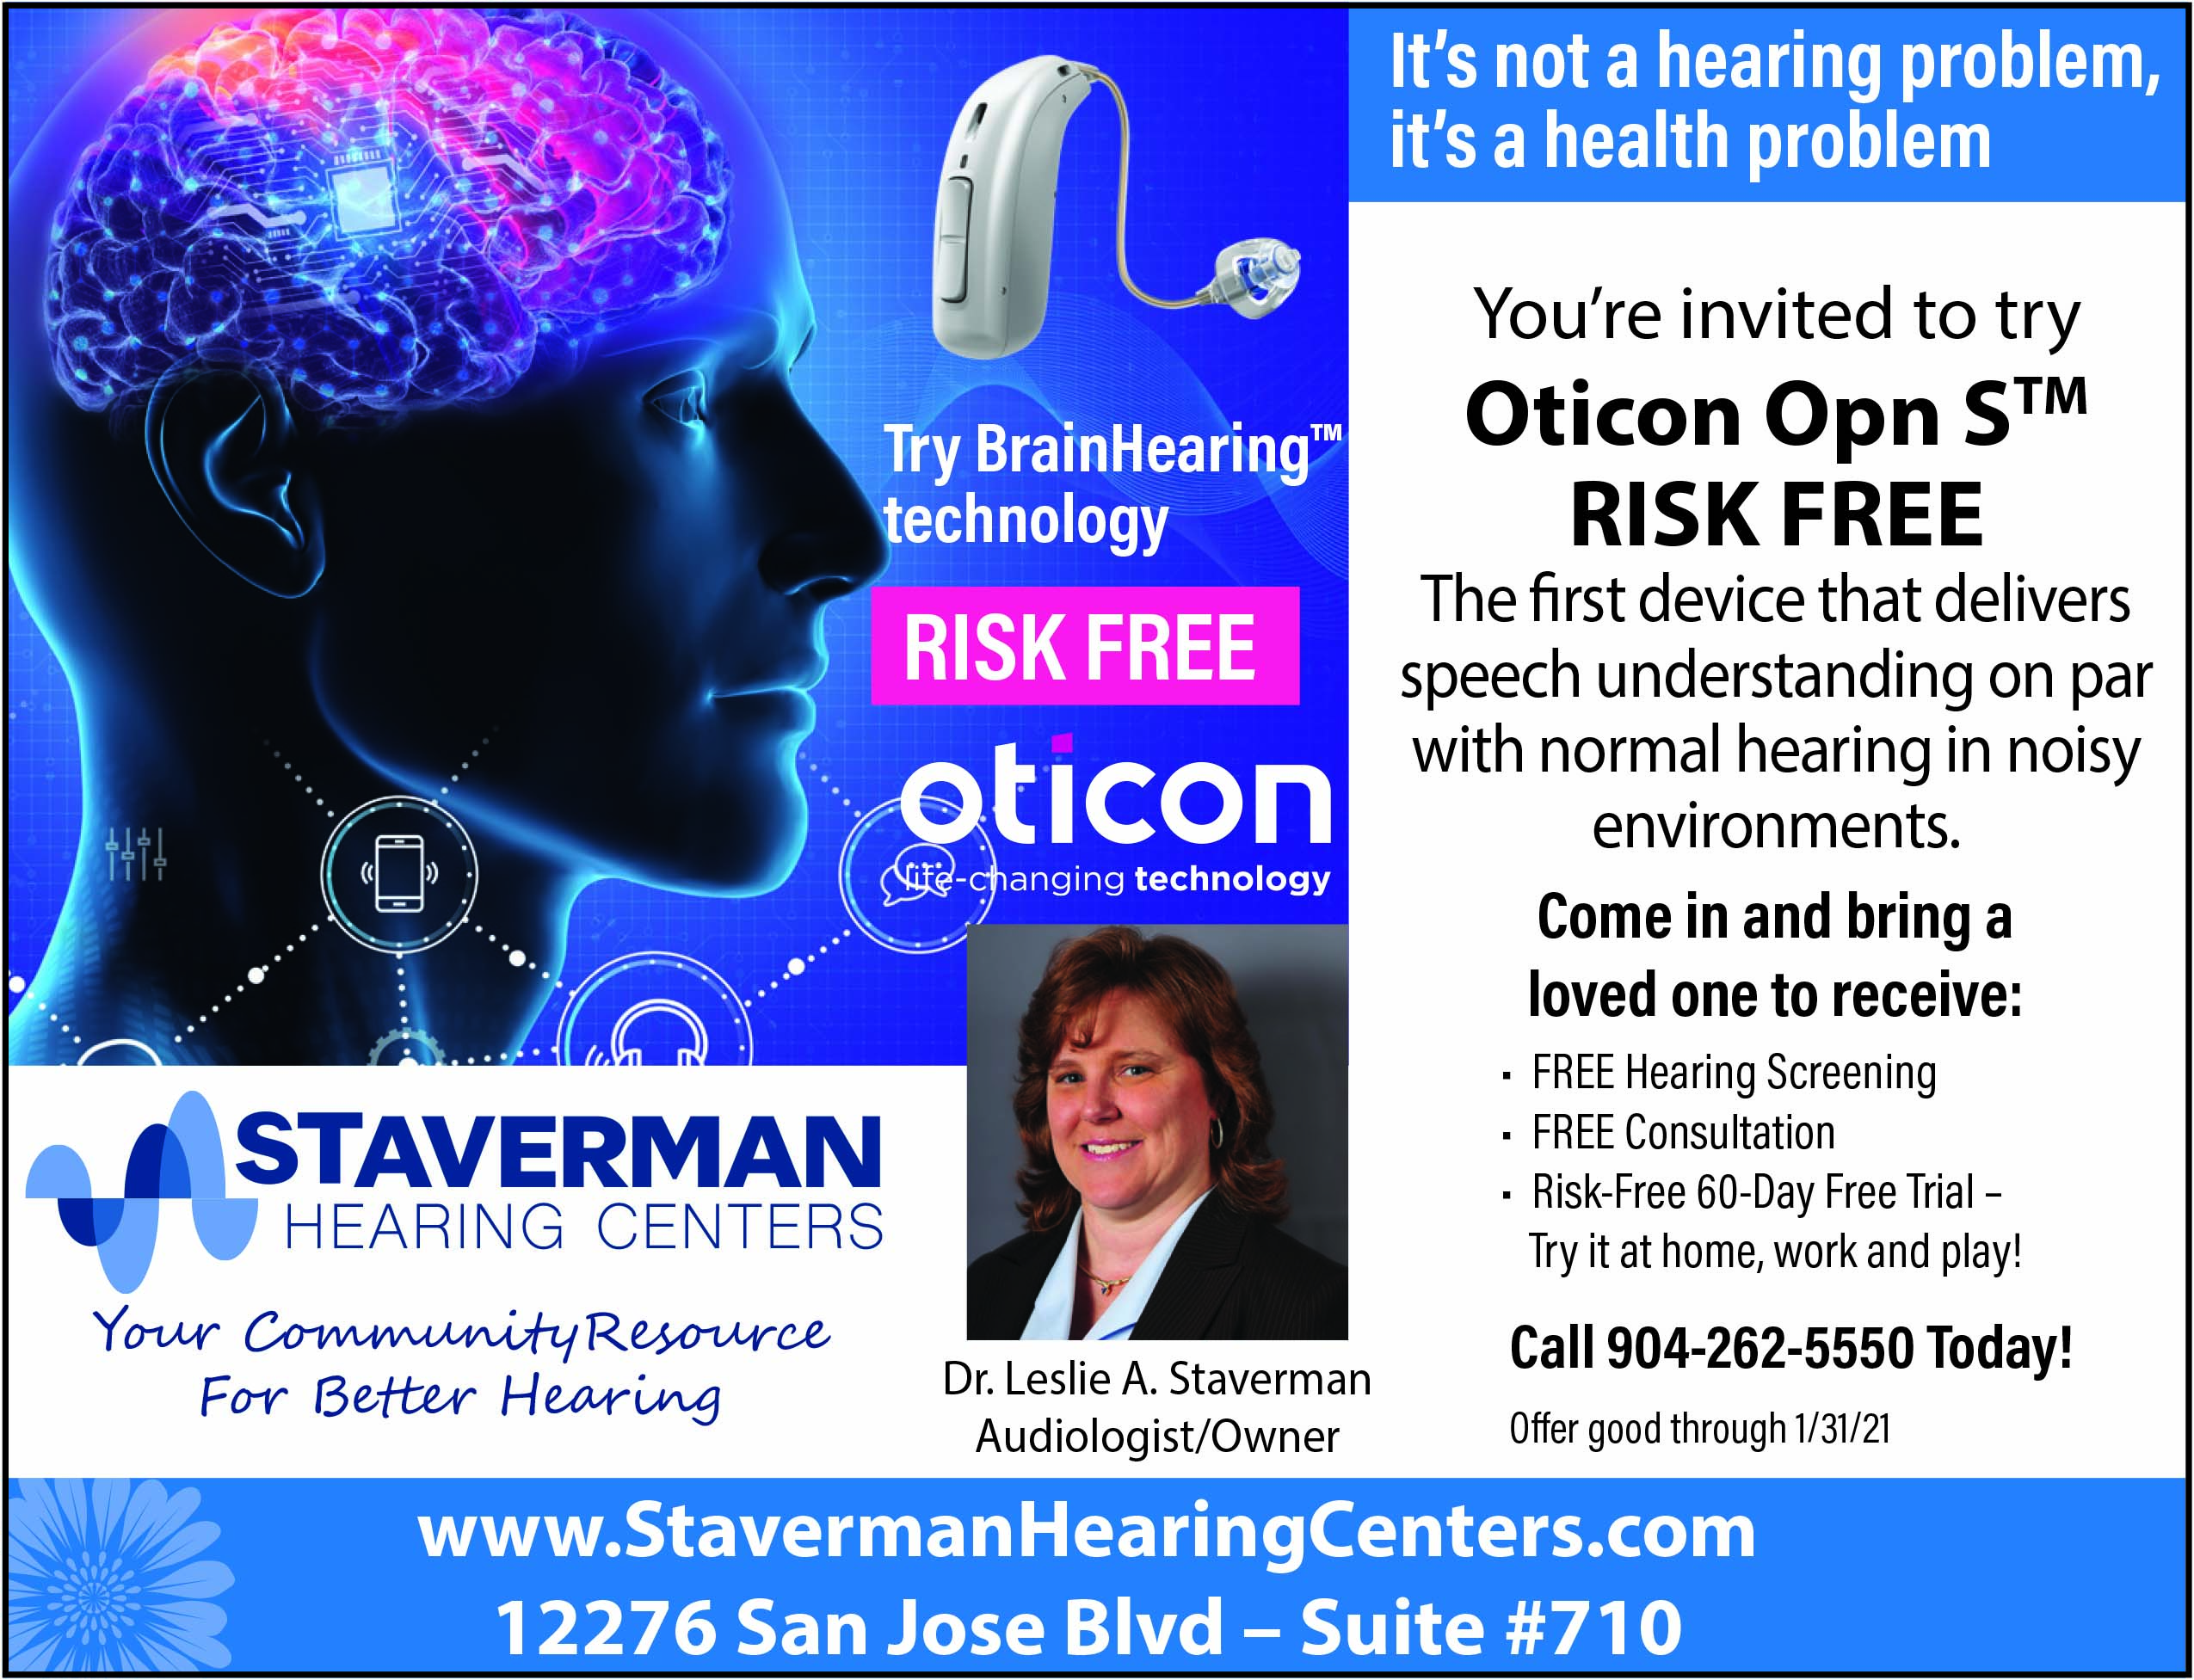 Staverman Hearing Centers Hear loud and clear